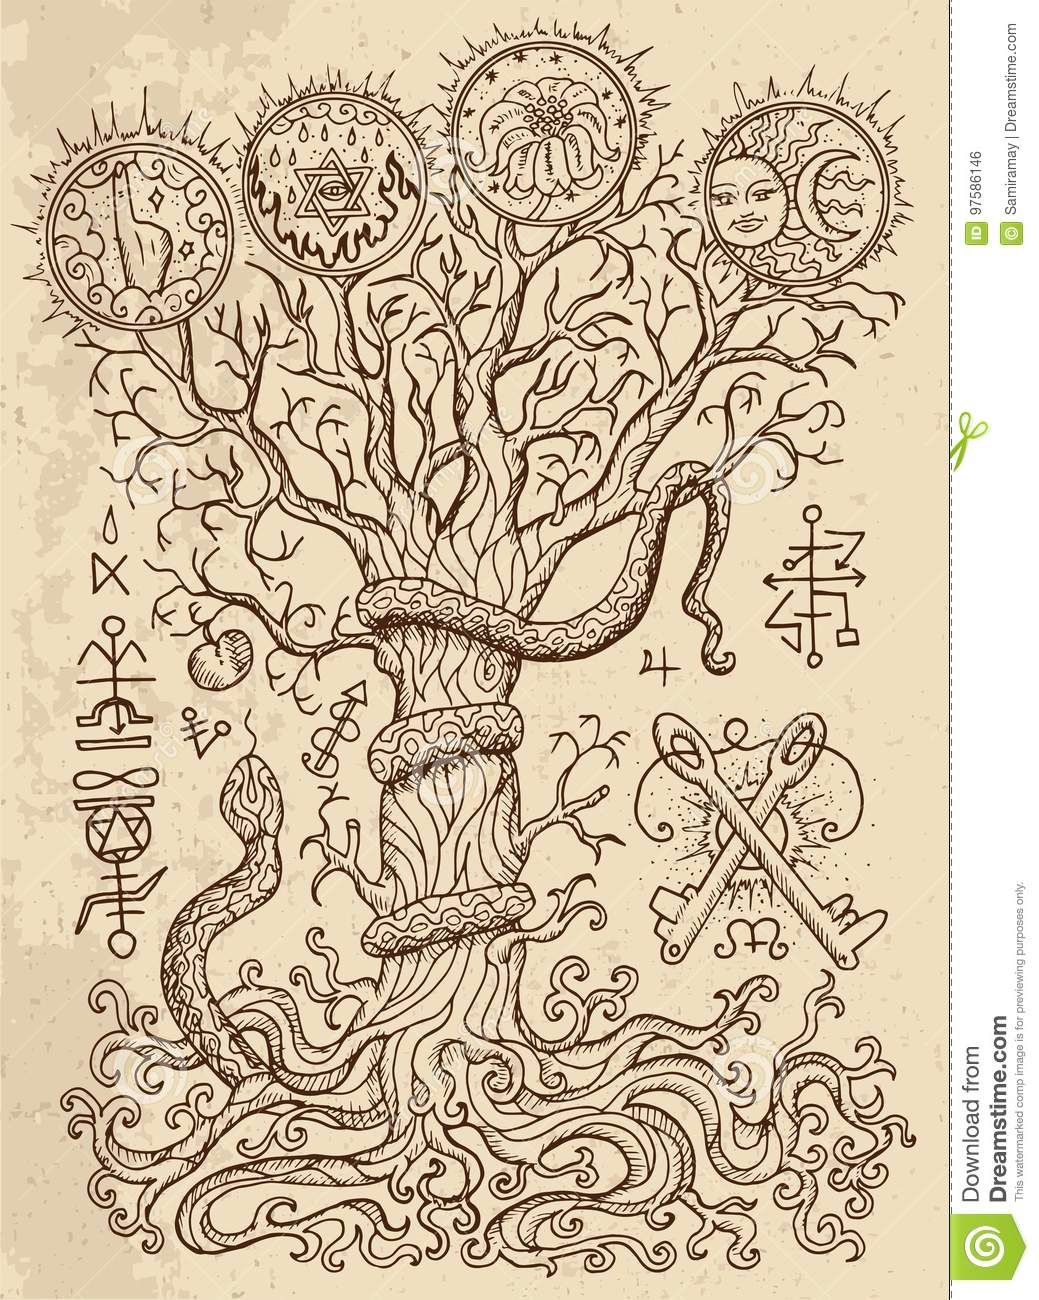 Mystic Drawing With Spiritual And Christian Religious